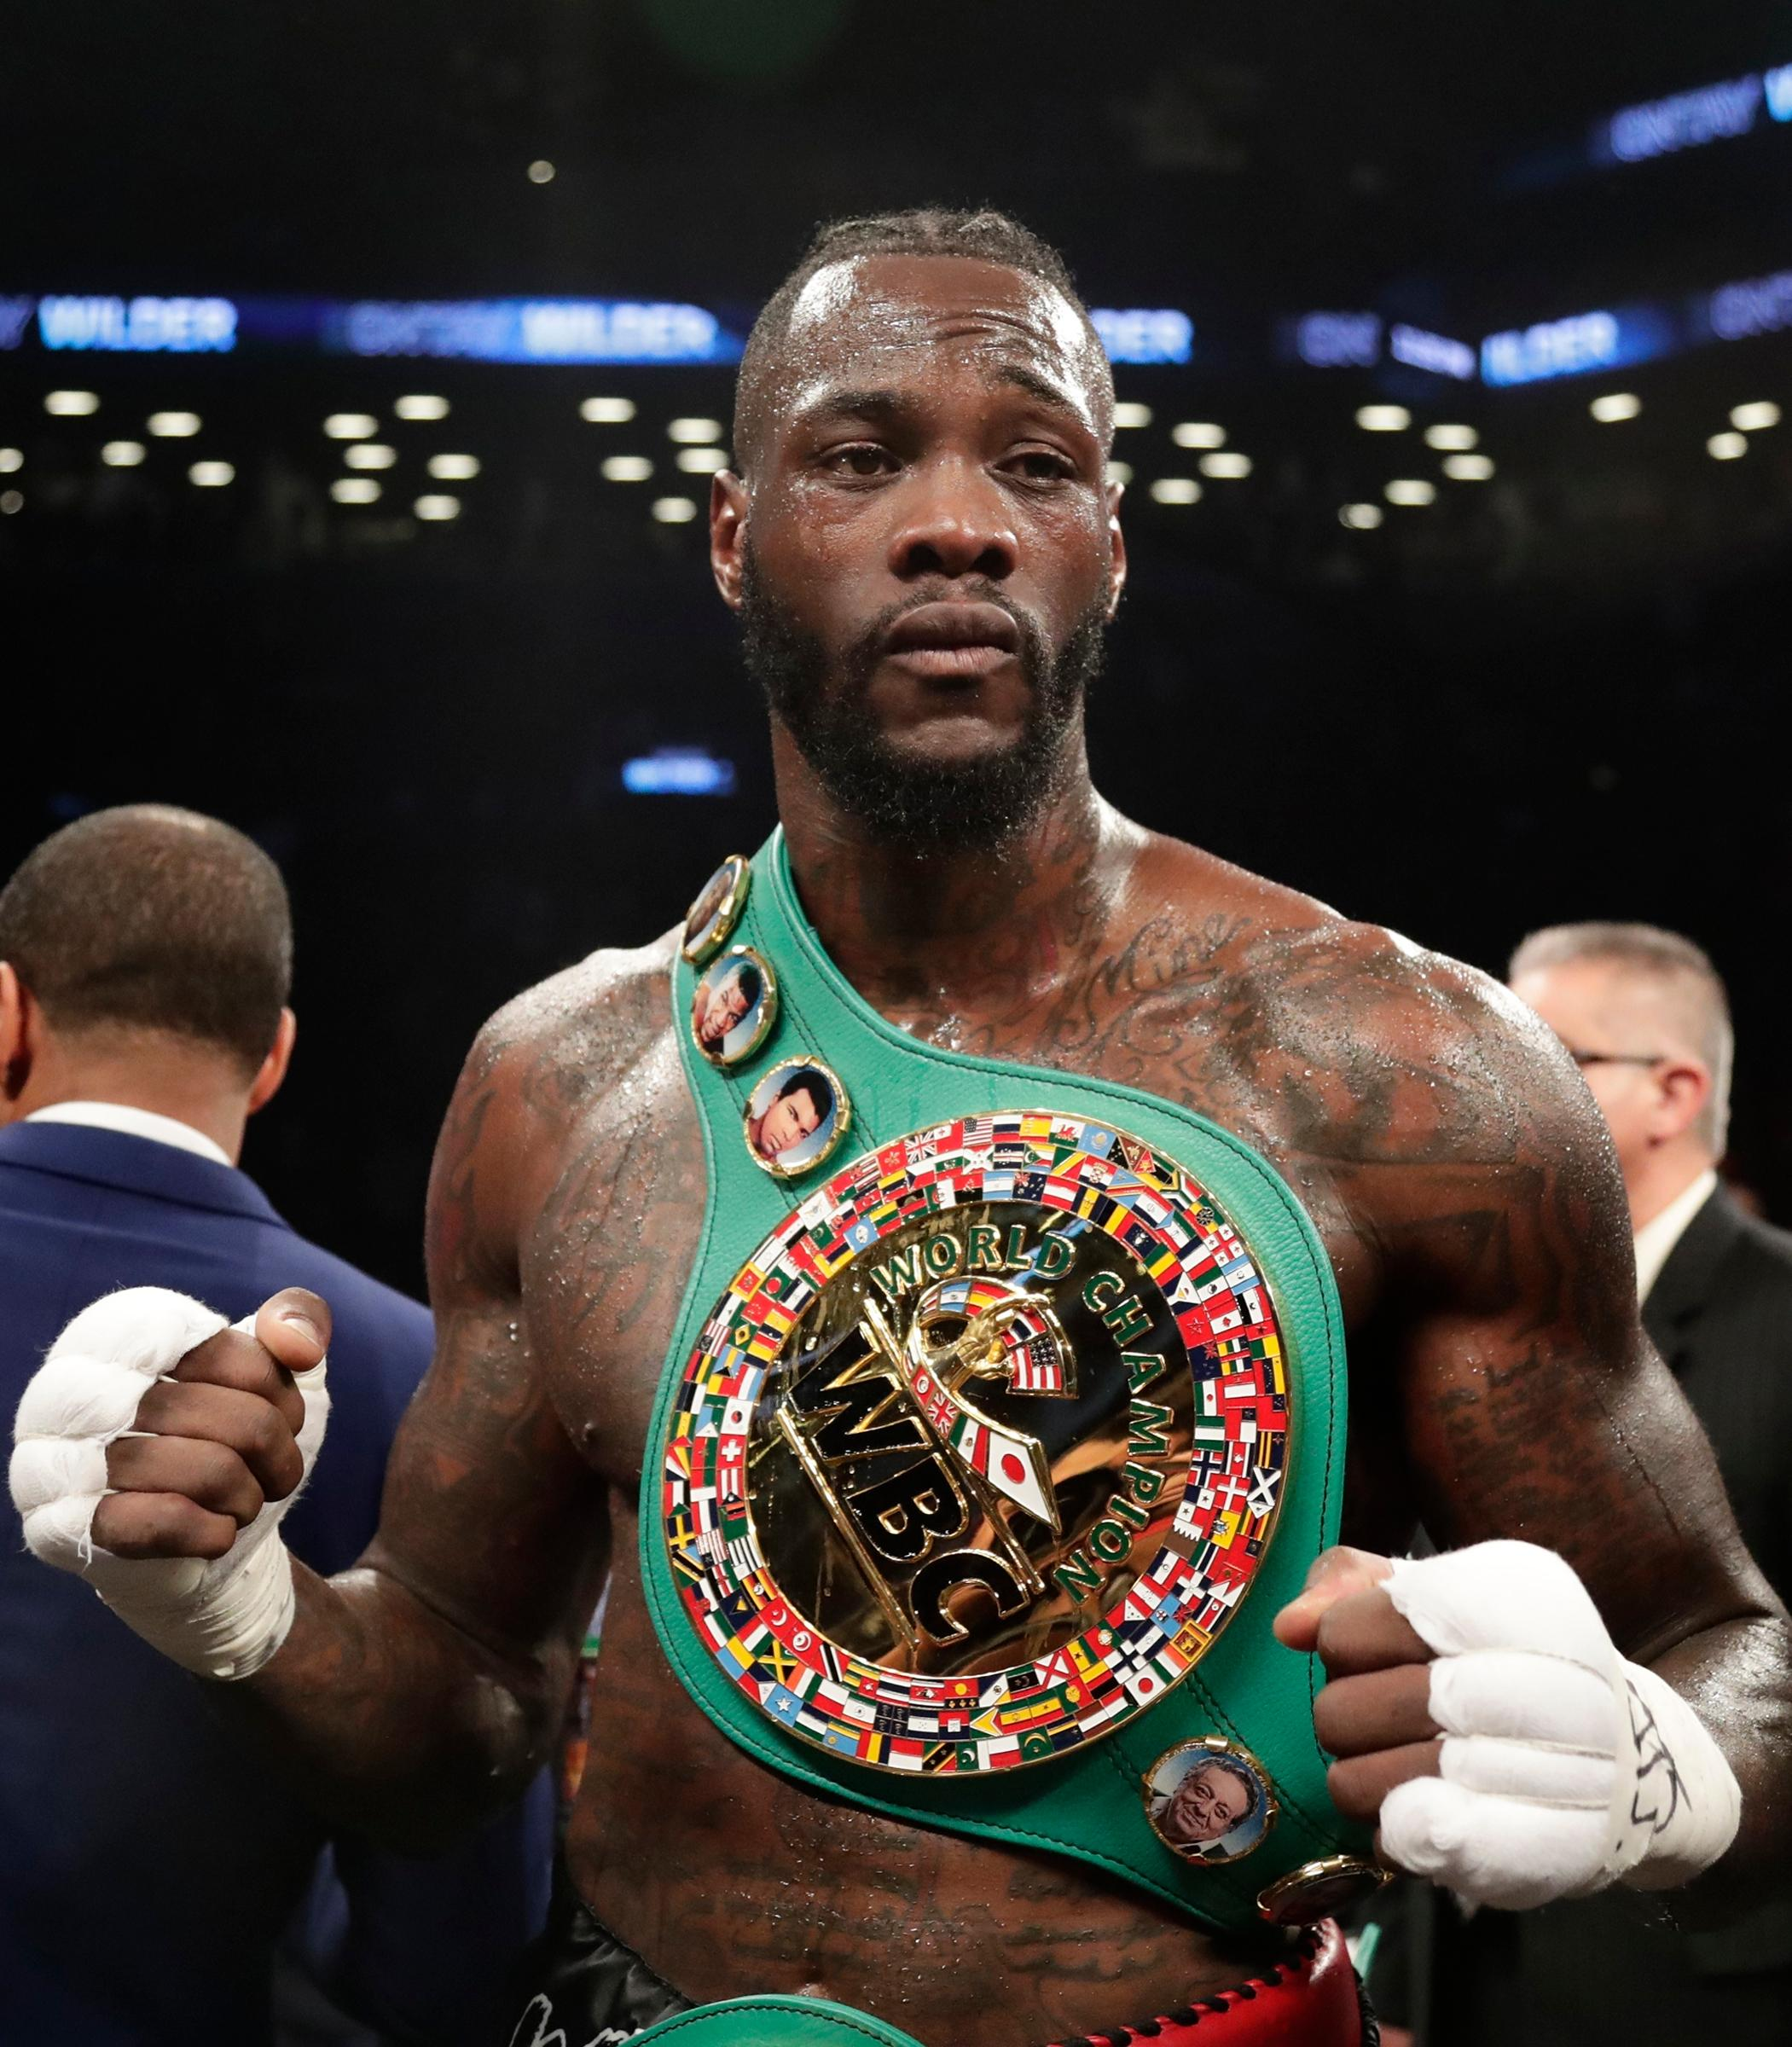 Deontay Wilder has held the WBC heavyweight title since 2015